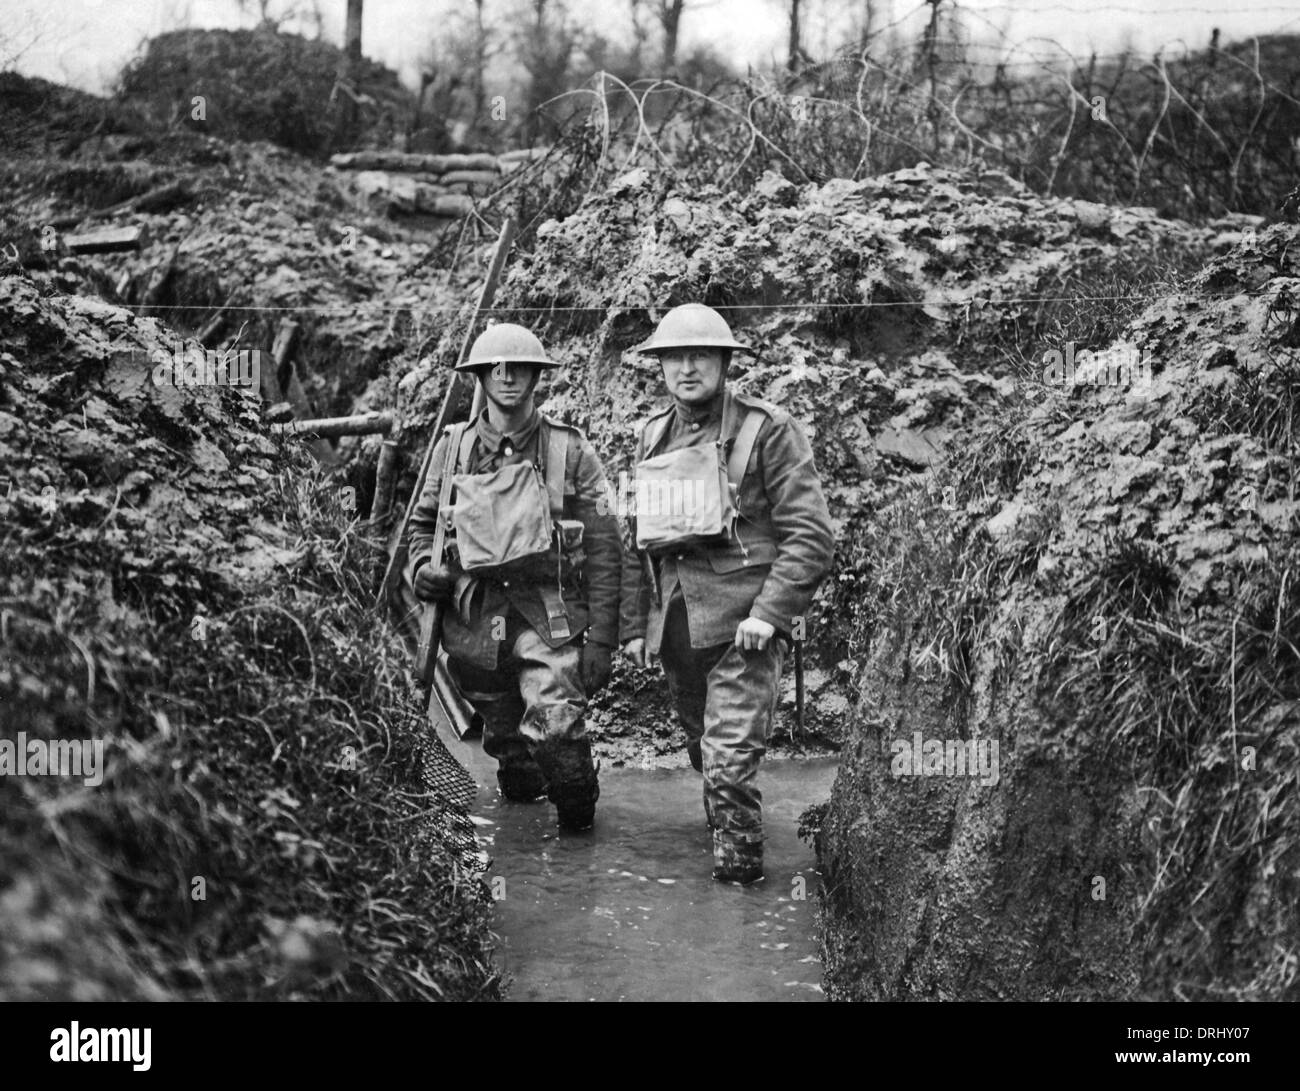 Two soldiers in flooded trench, Western Front, WW1 - Stock Image